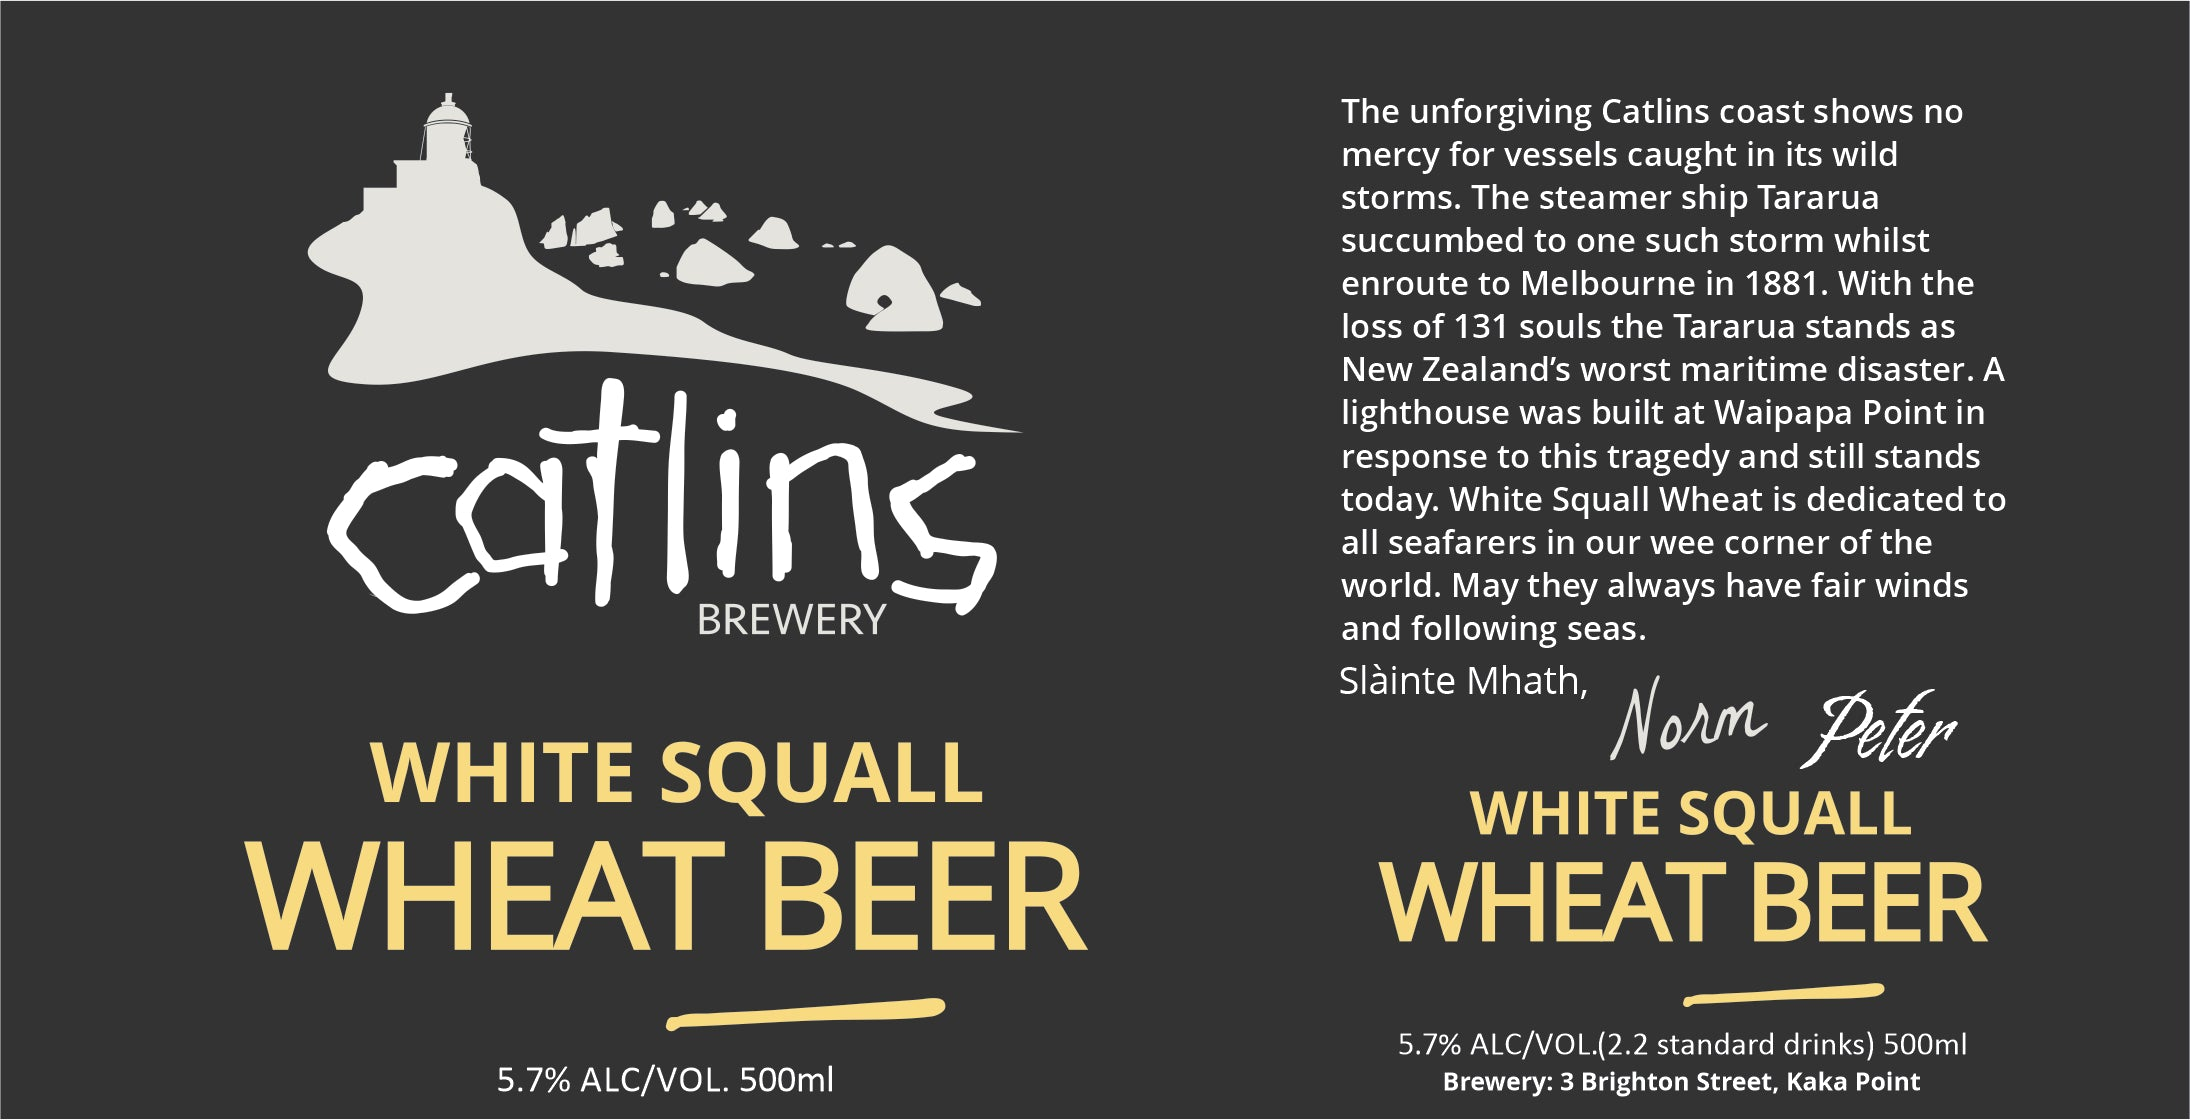 WHEAT BEER - WHITE SQUALL